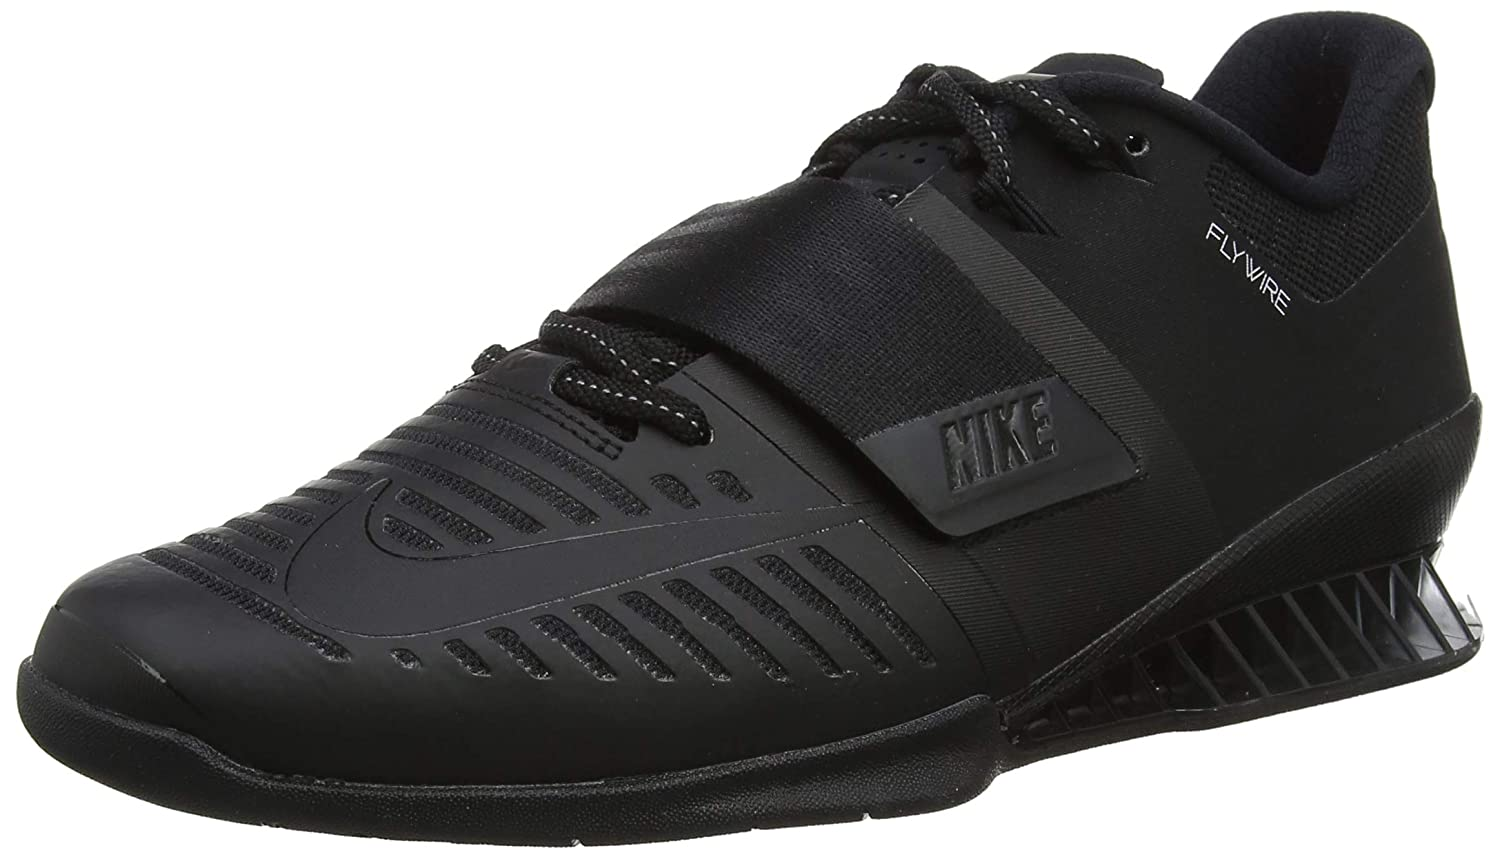 best value c57fb 95786 Amazon.com   Nike Romaleos 3 Mens Weighlifting Shoes   Fitness    Cross-Training